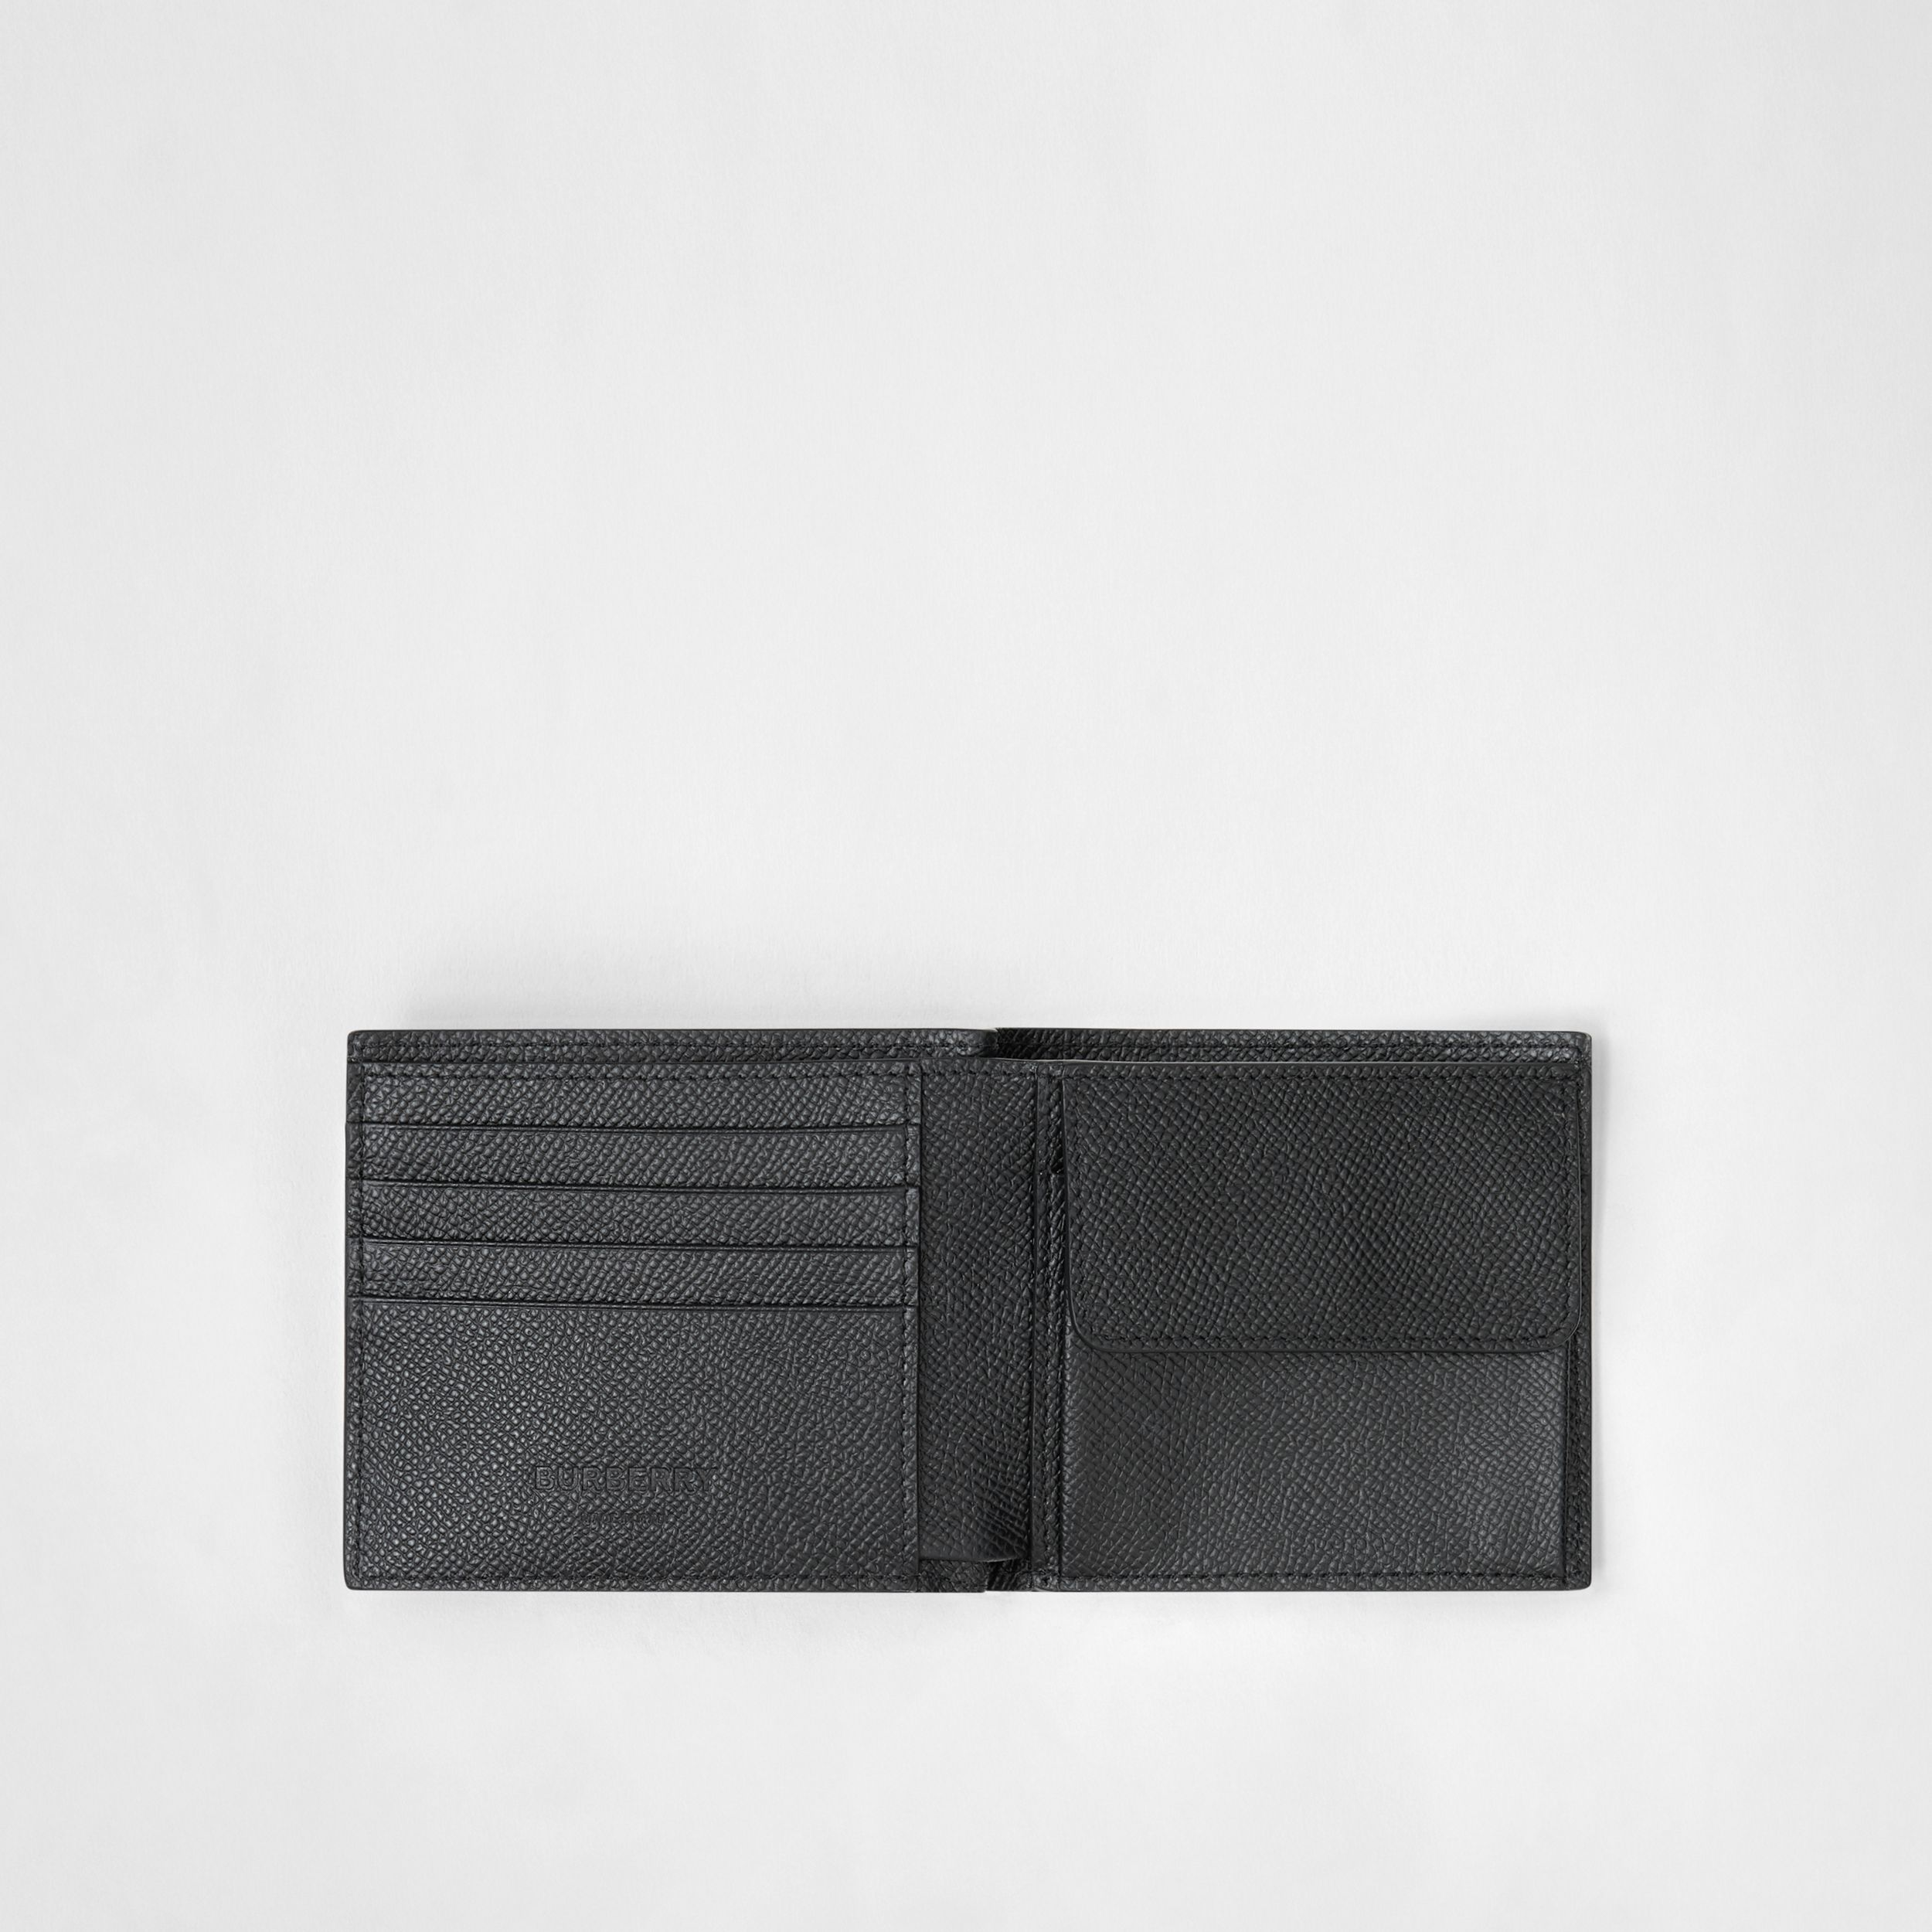 Grainy Leather International Bifold Coin Wallet in Black - Men | Burberry Hong Kong S.A.R. - 3